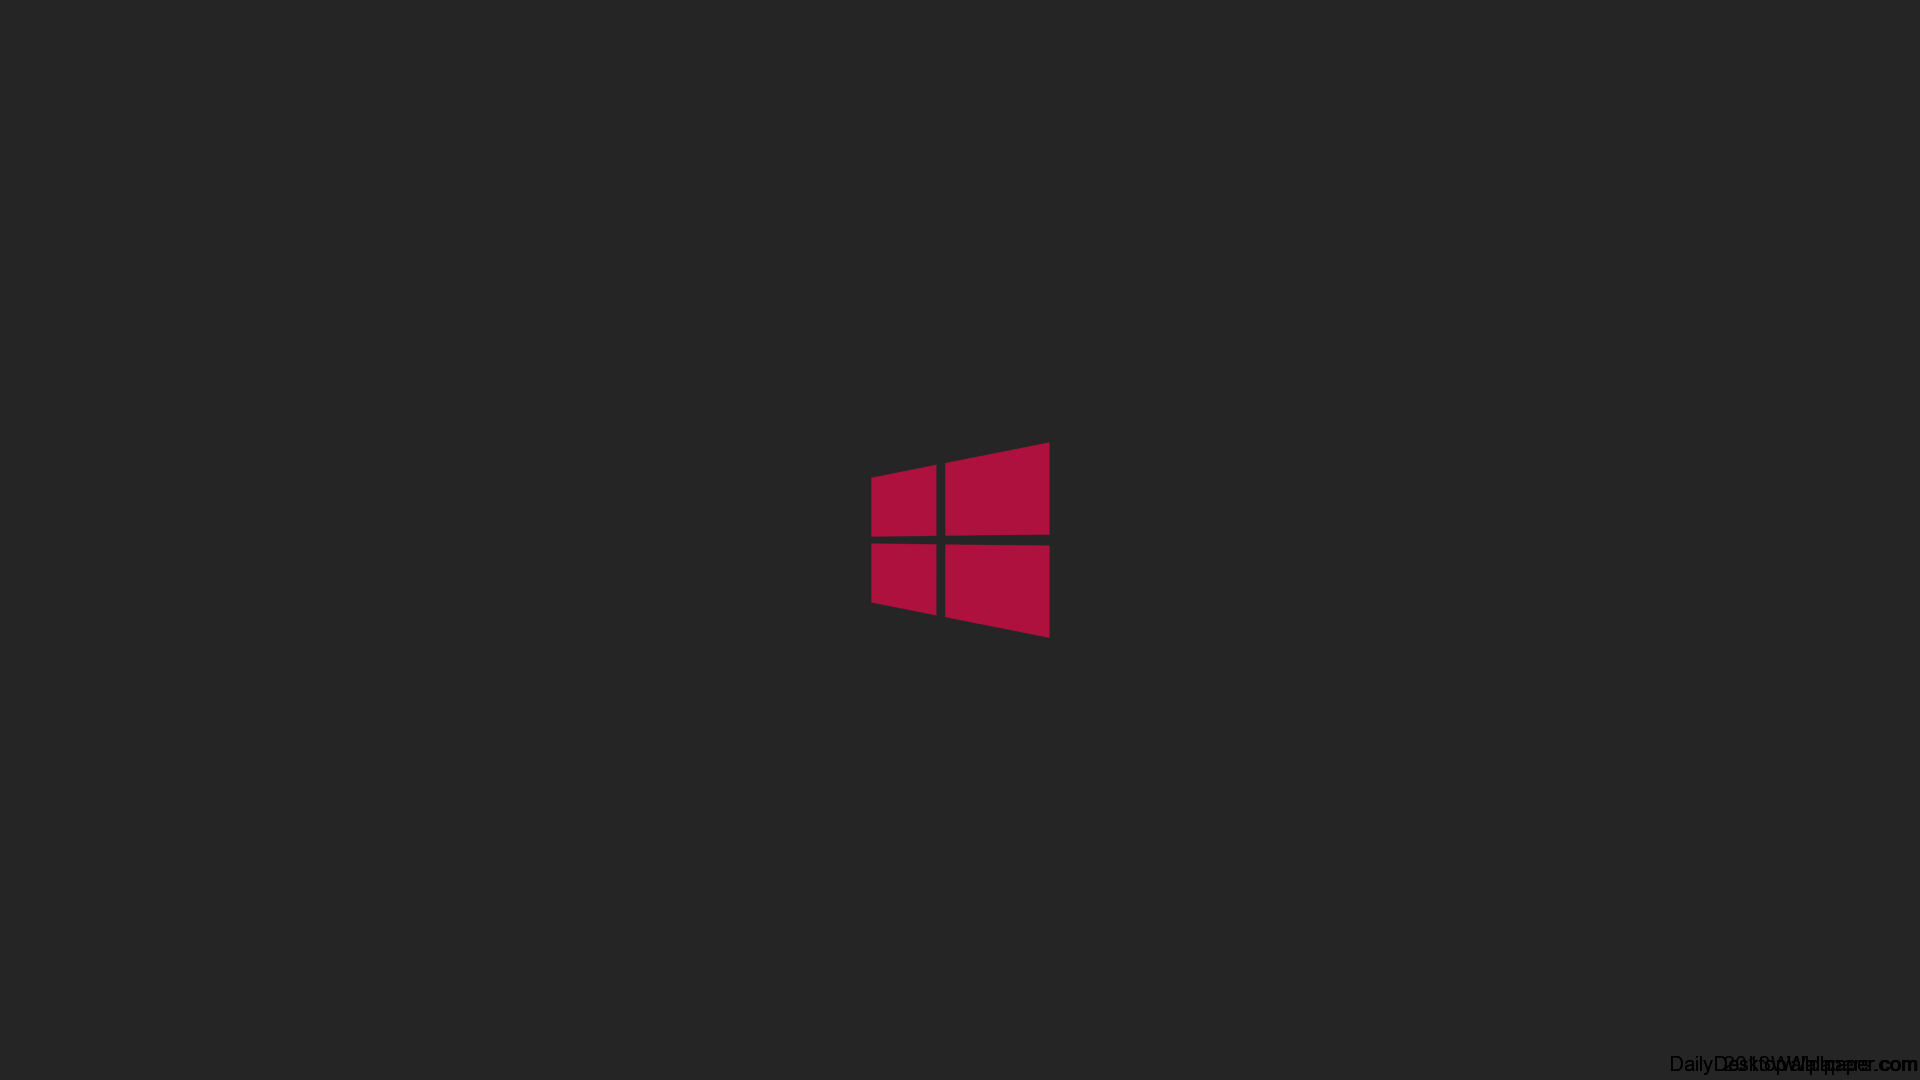 Windows Logo Wallpapers - Wallpaper Cave